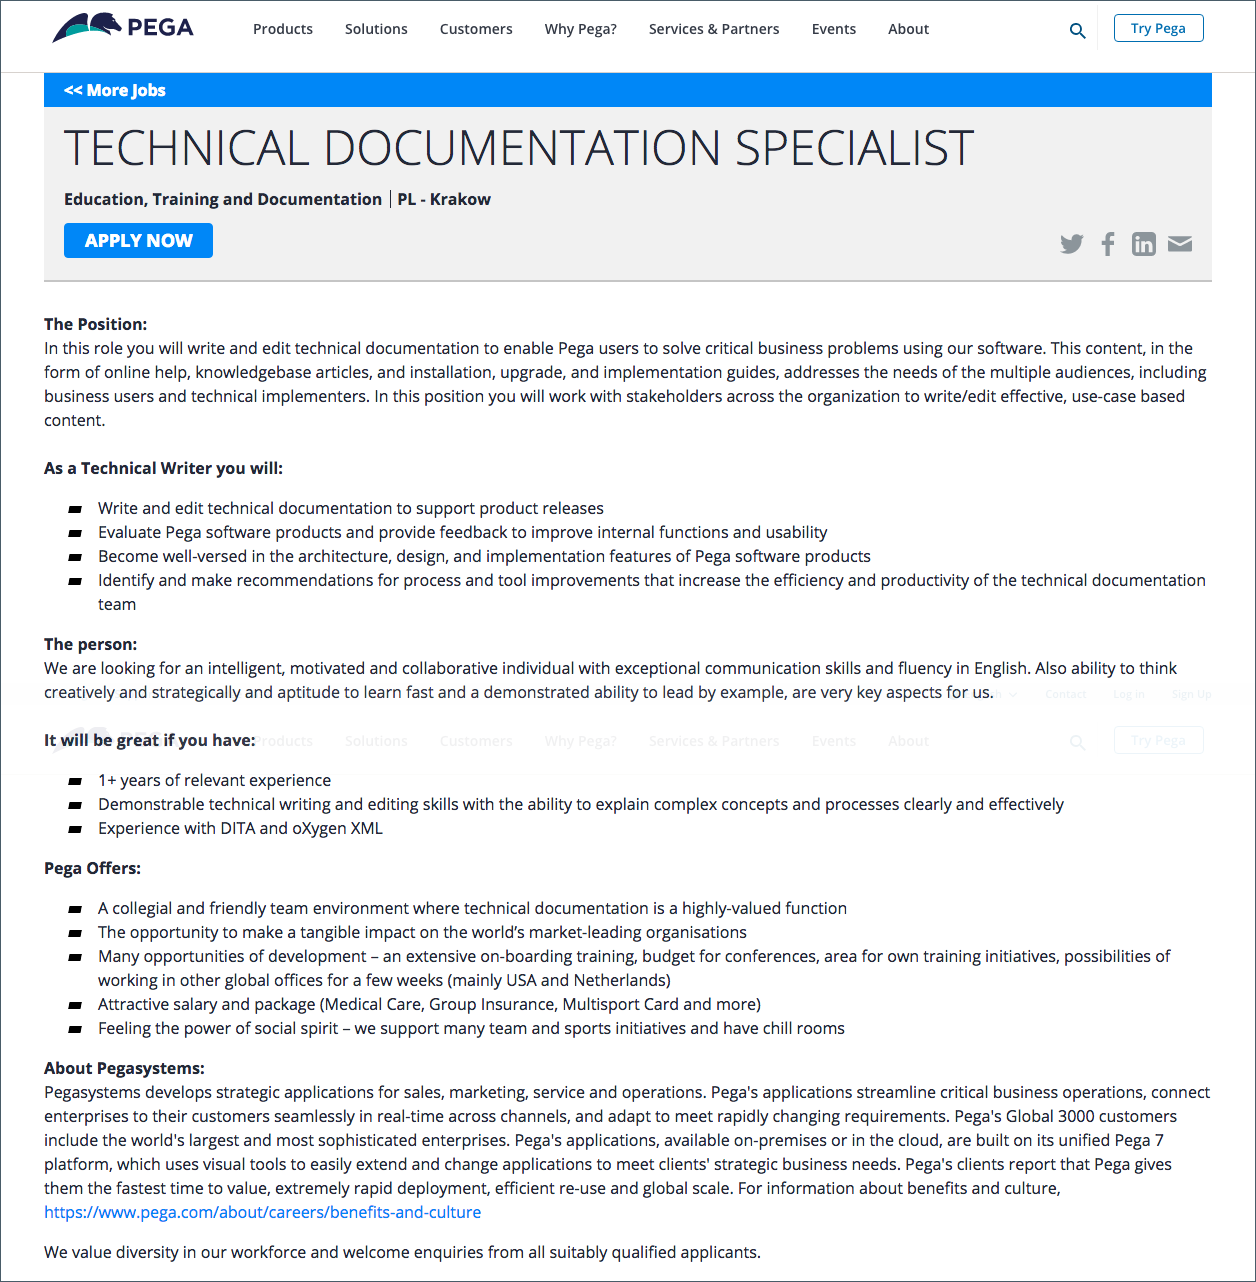 Technical documentation: writing for the right audience